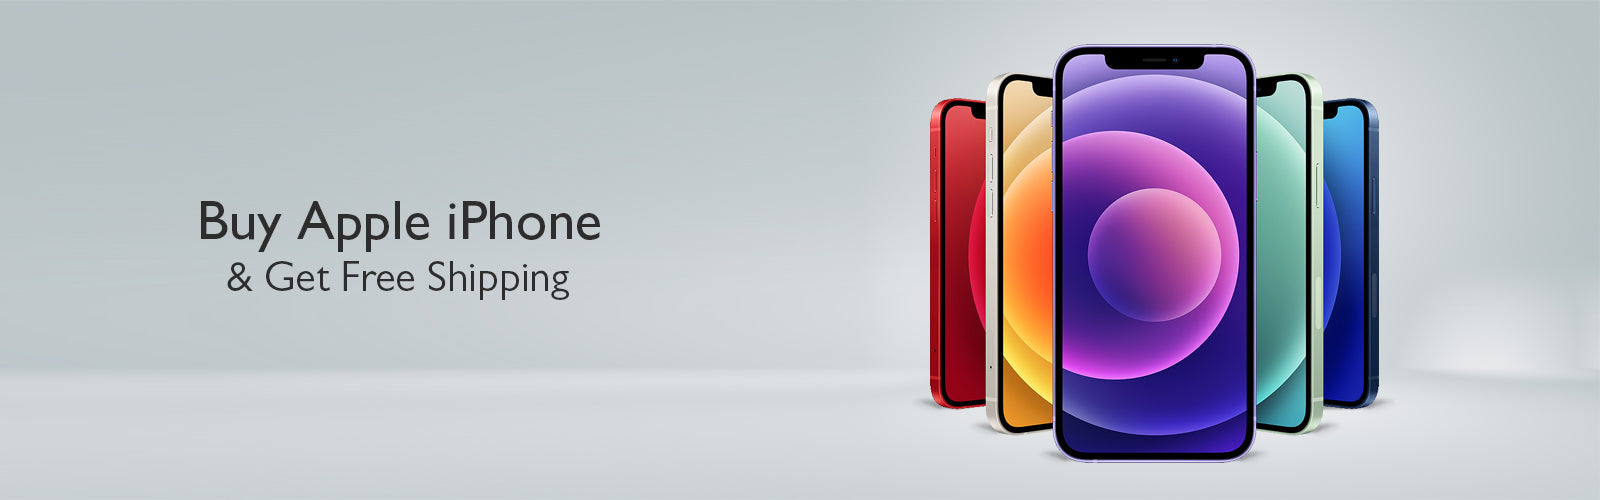 iphone offer - free ship